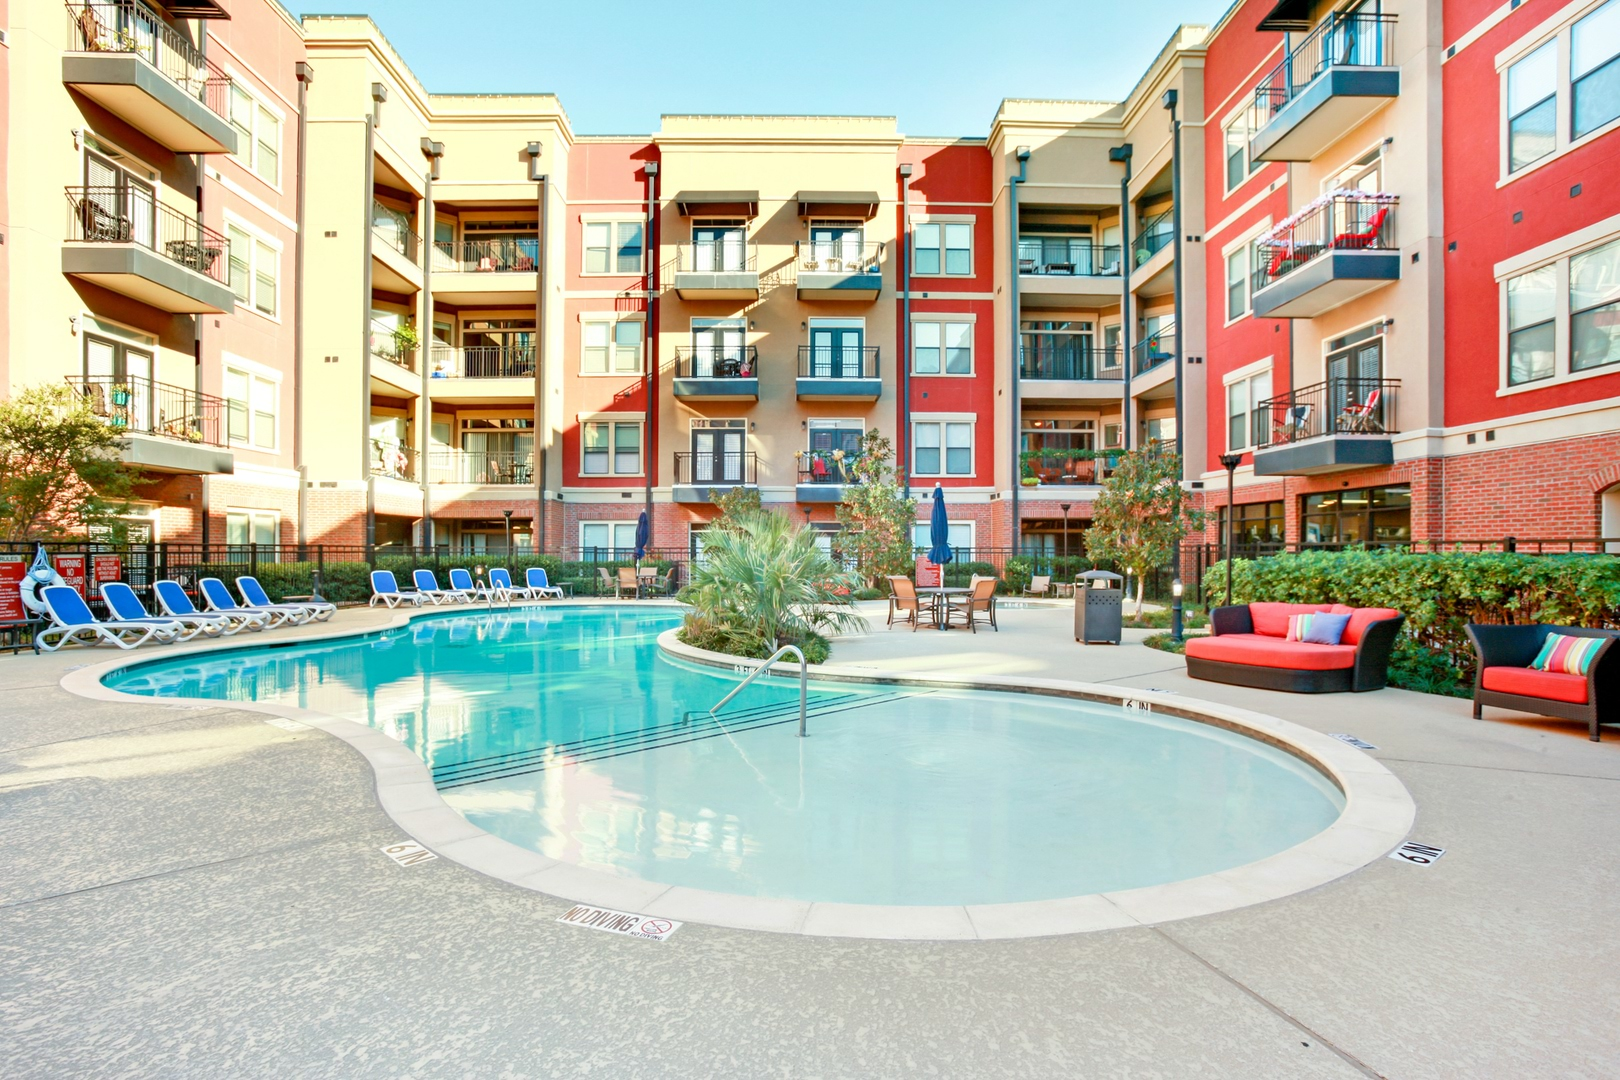 Garage Apartments For Rent Grapevine Tx Grapevine Tx Apartments Resort At 925 Main